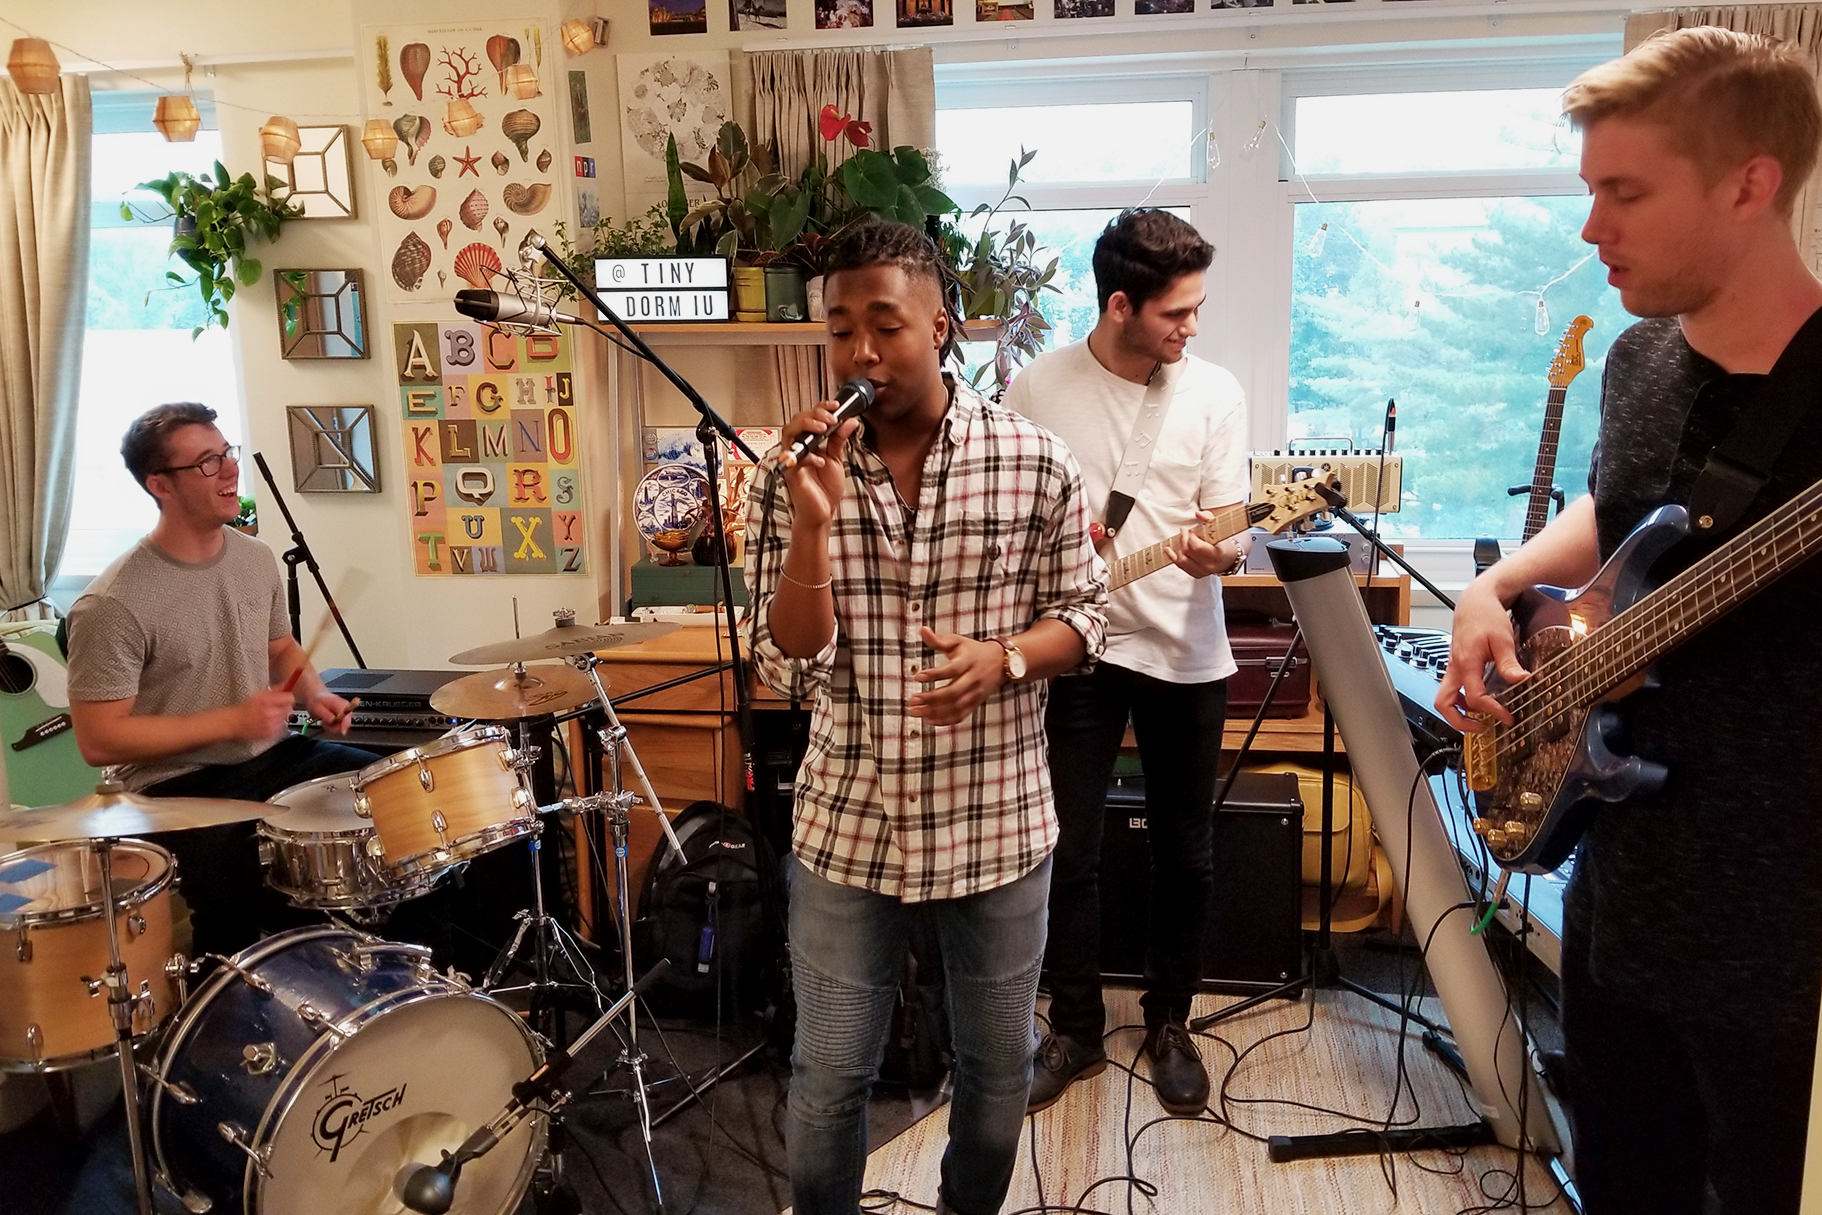 A drummer, singer, guitarist and bassist all pack into a dorm room to play music